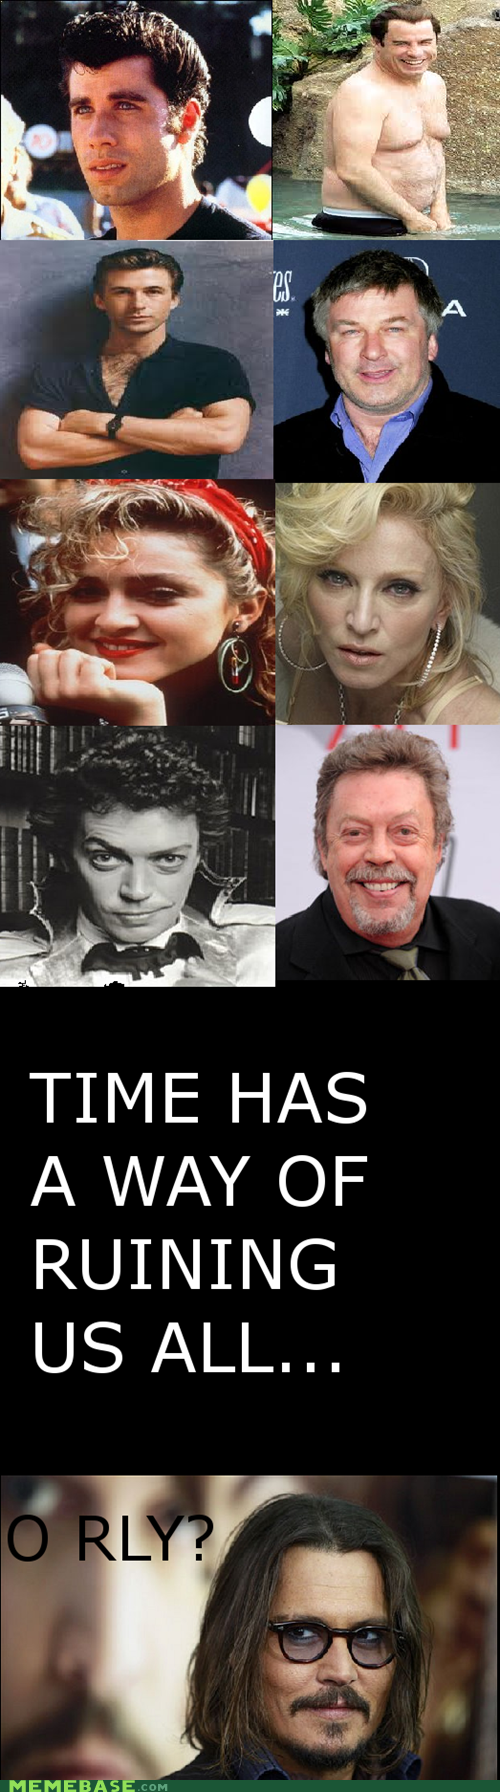 Time Ruins Us All.... Unless your Johnny Depp.